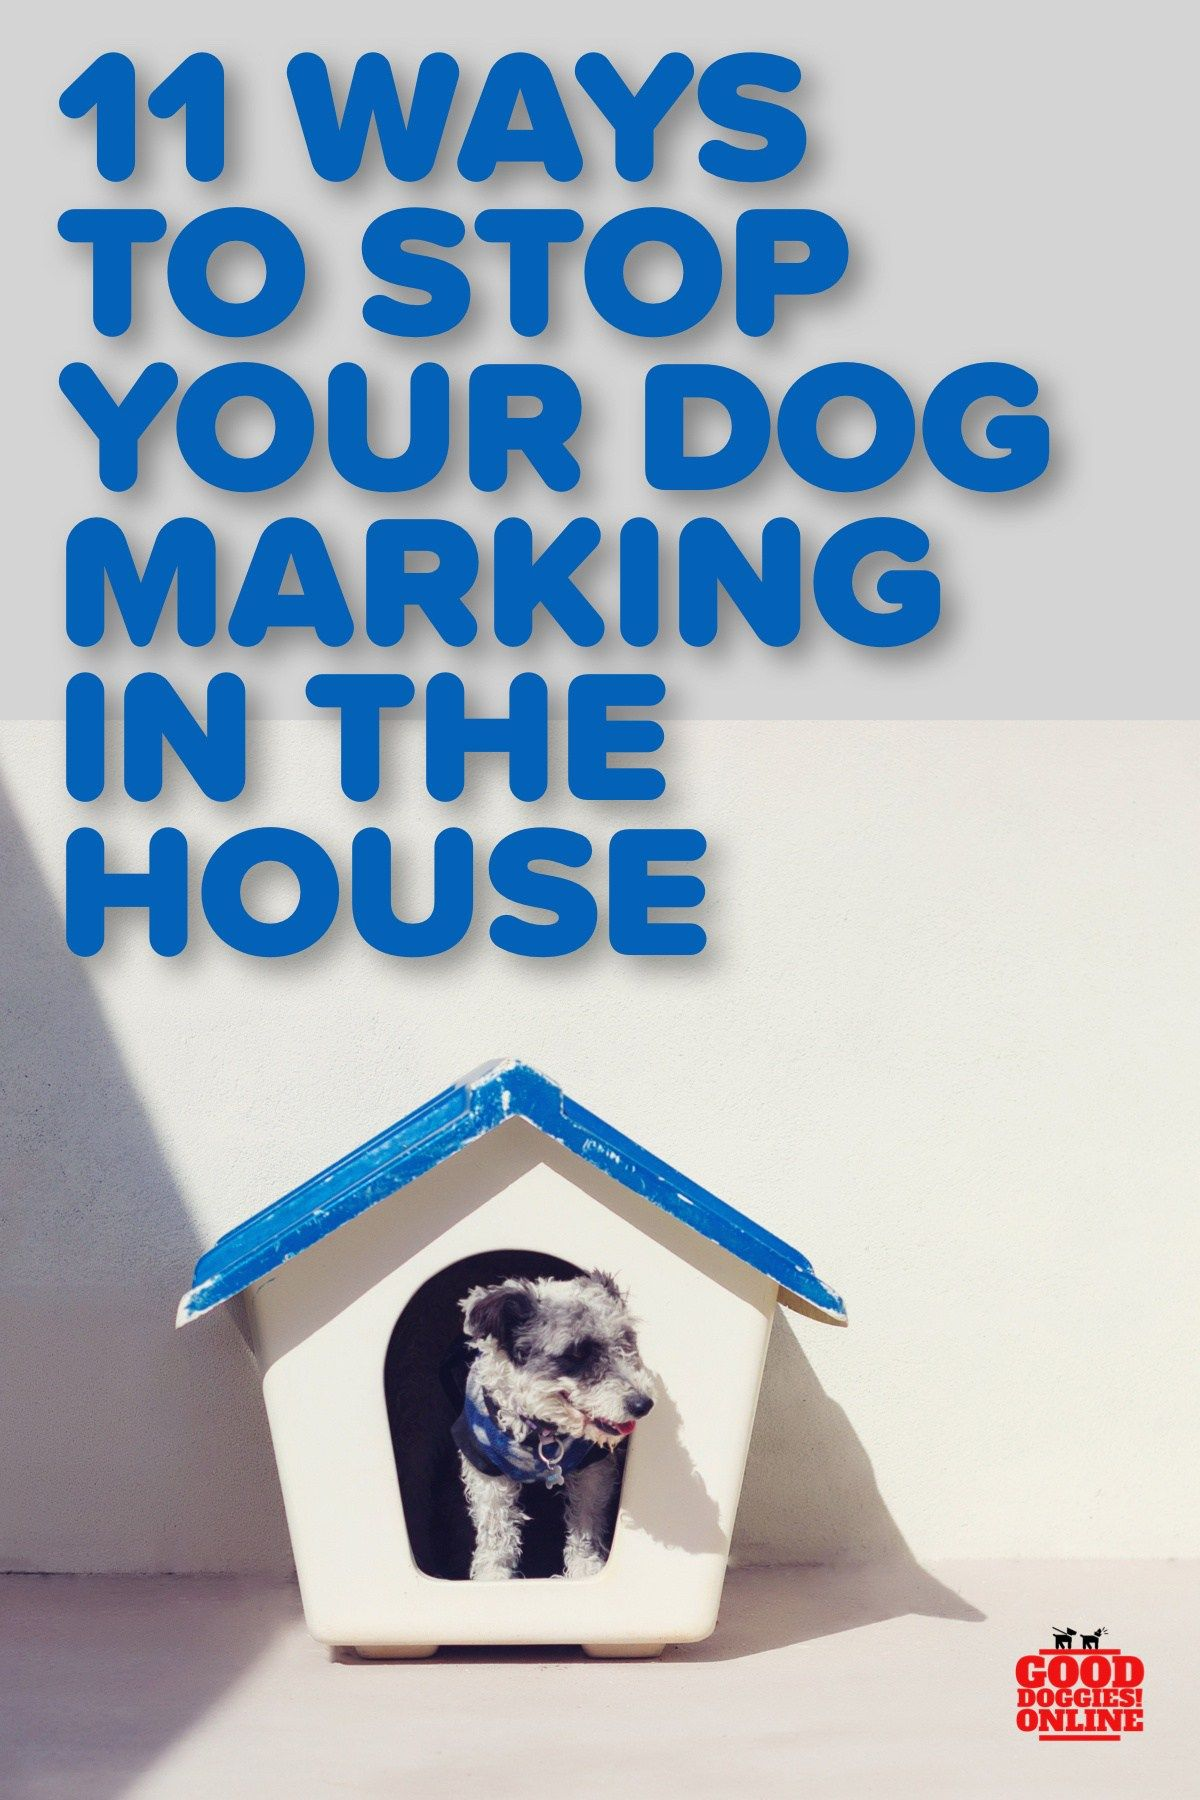 How To Stop Your Dog From Marking In The House Good Doggies Online Dogs Peeing In House Good Doggies Online Your Dog